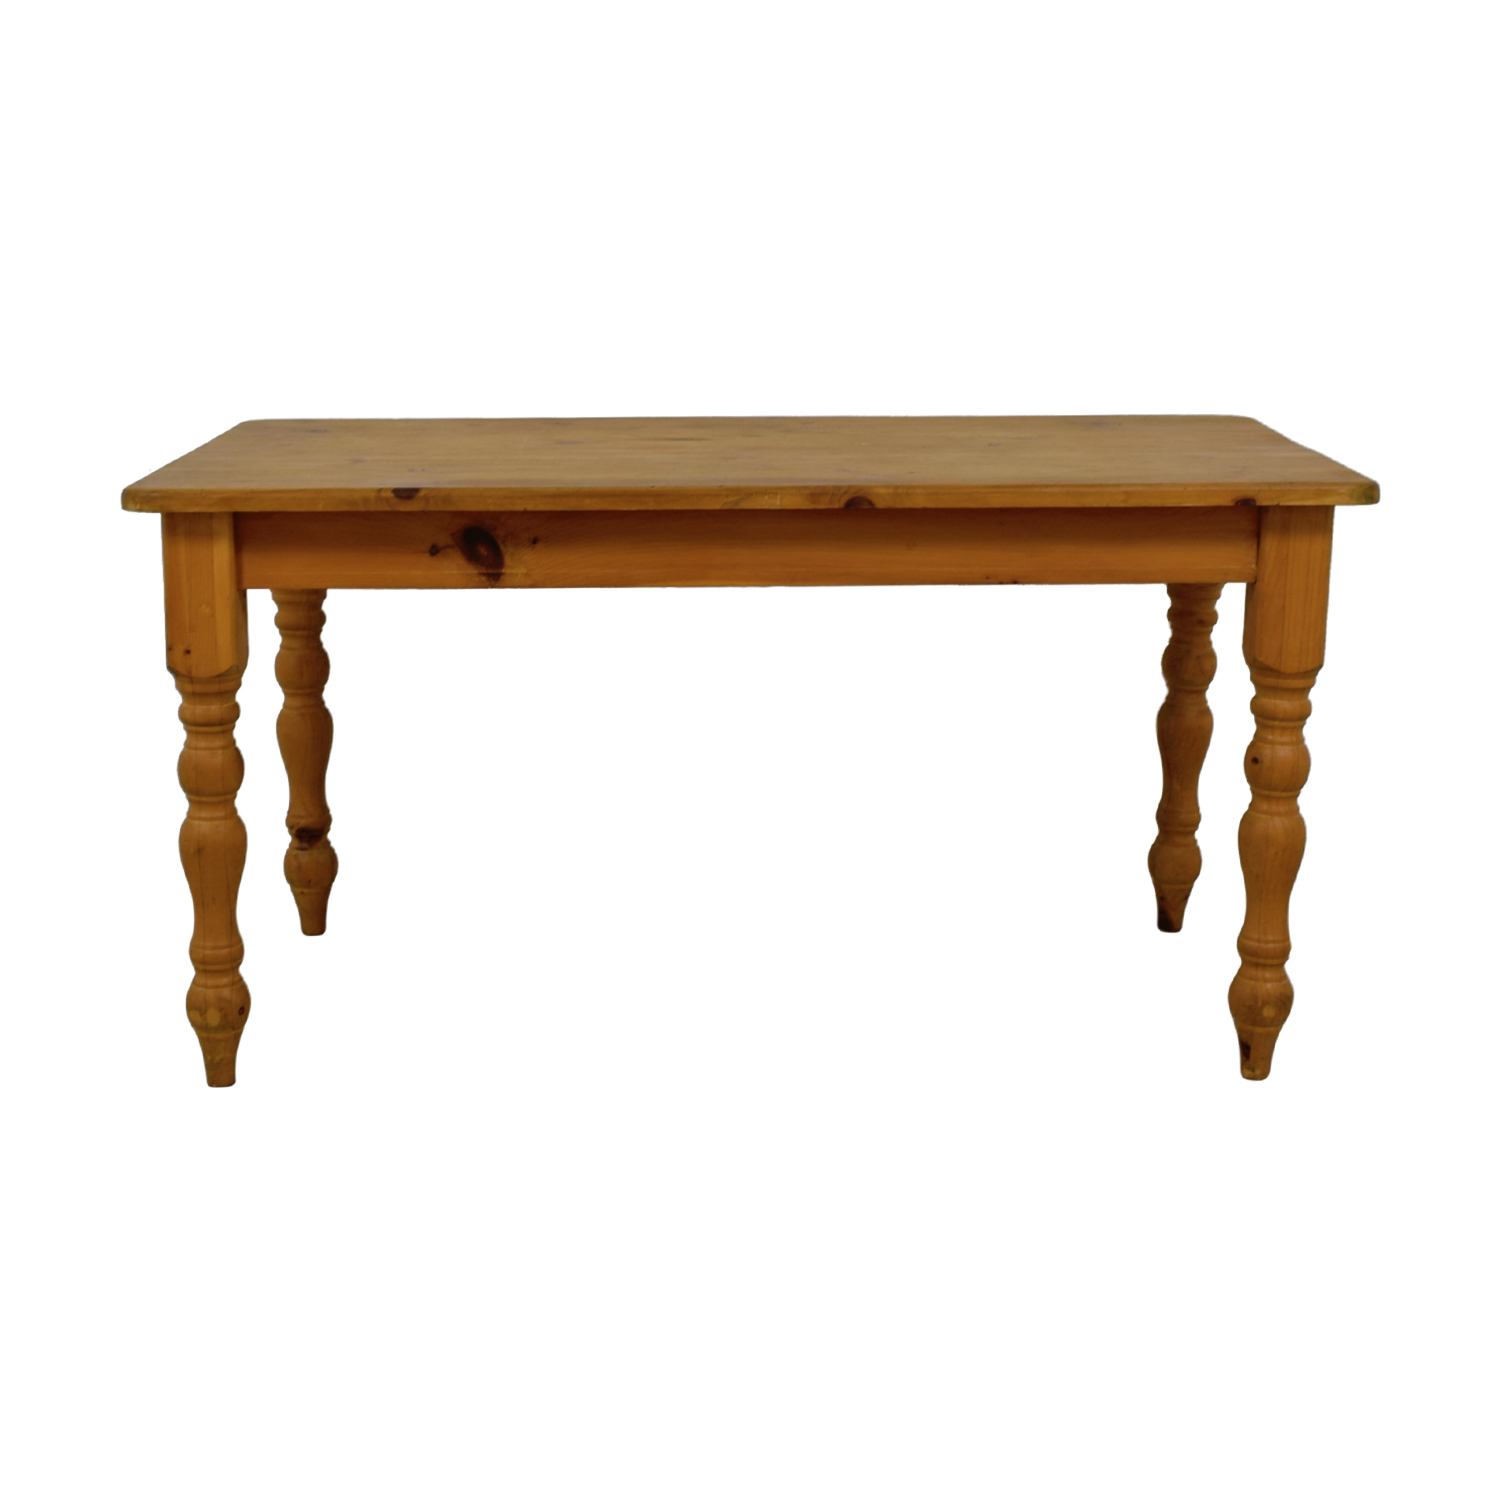 Rustic Pine Wood Farmhouse Table dimensions